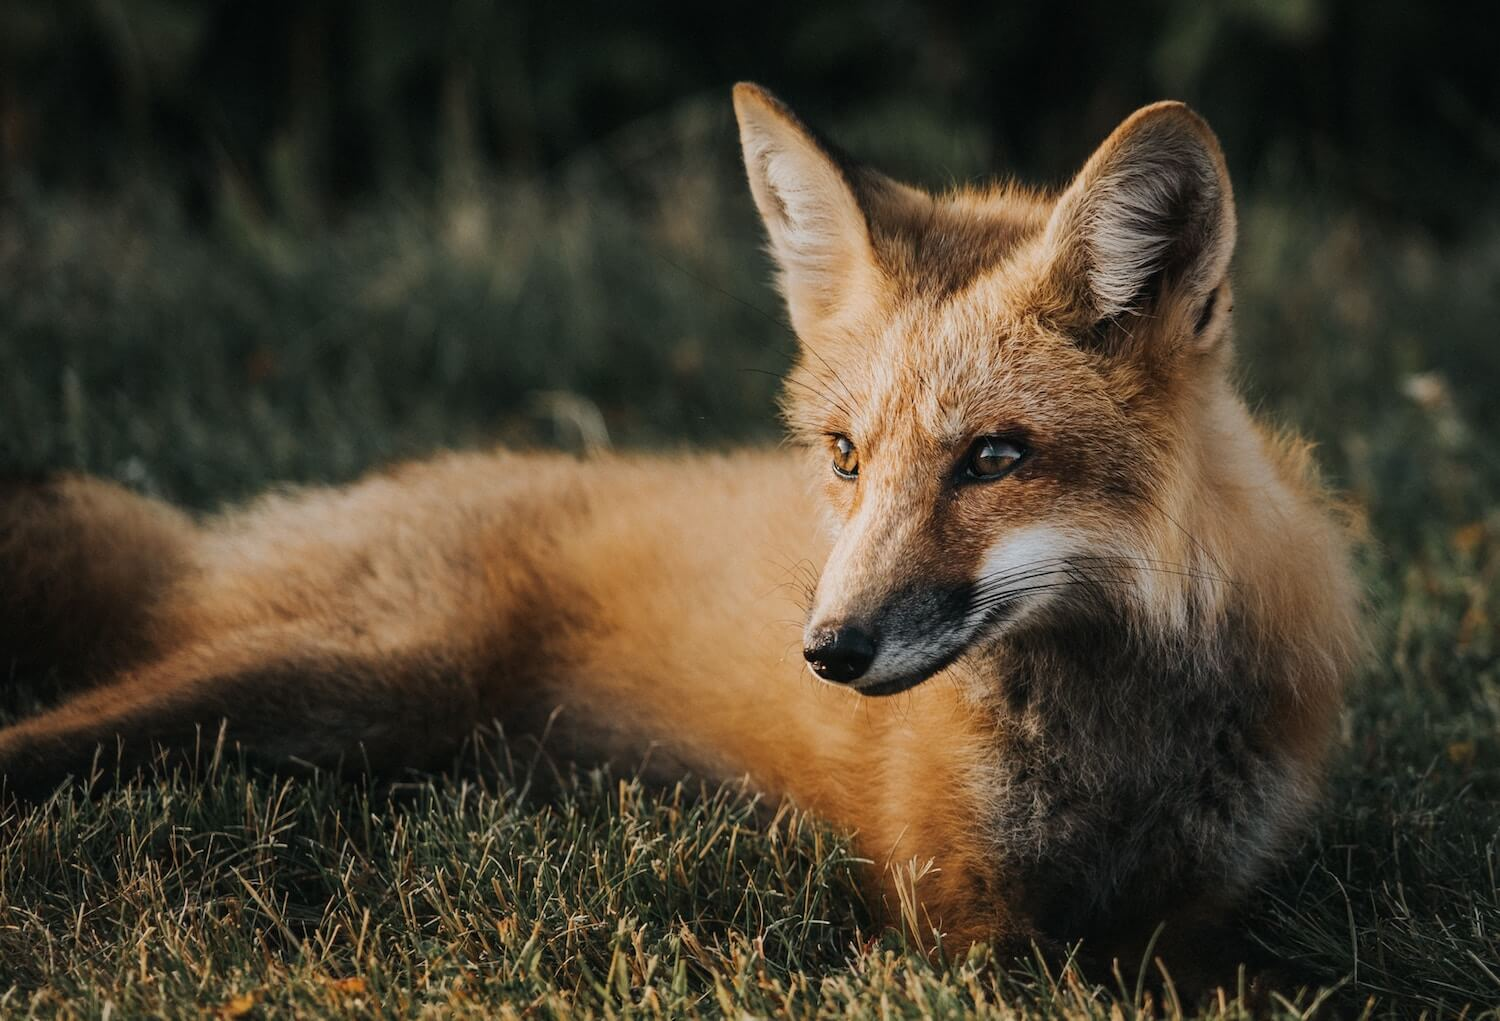 9 Things You Probably Didn't Know About the Fur Industry